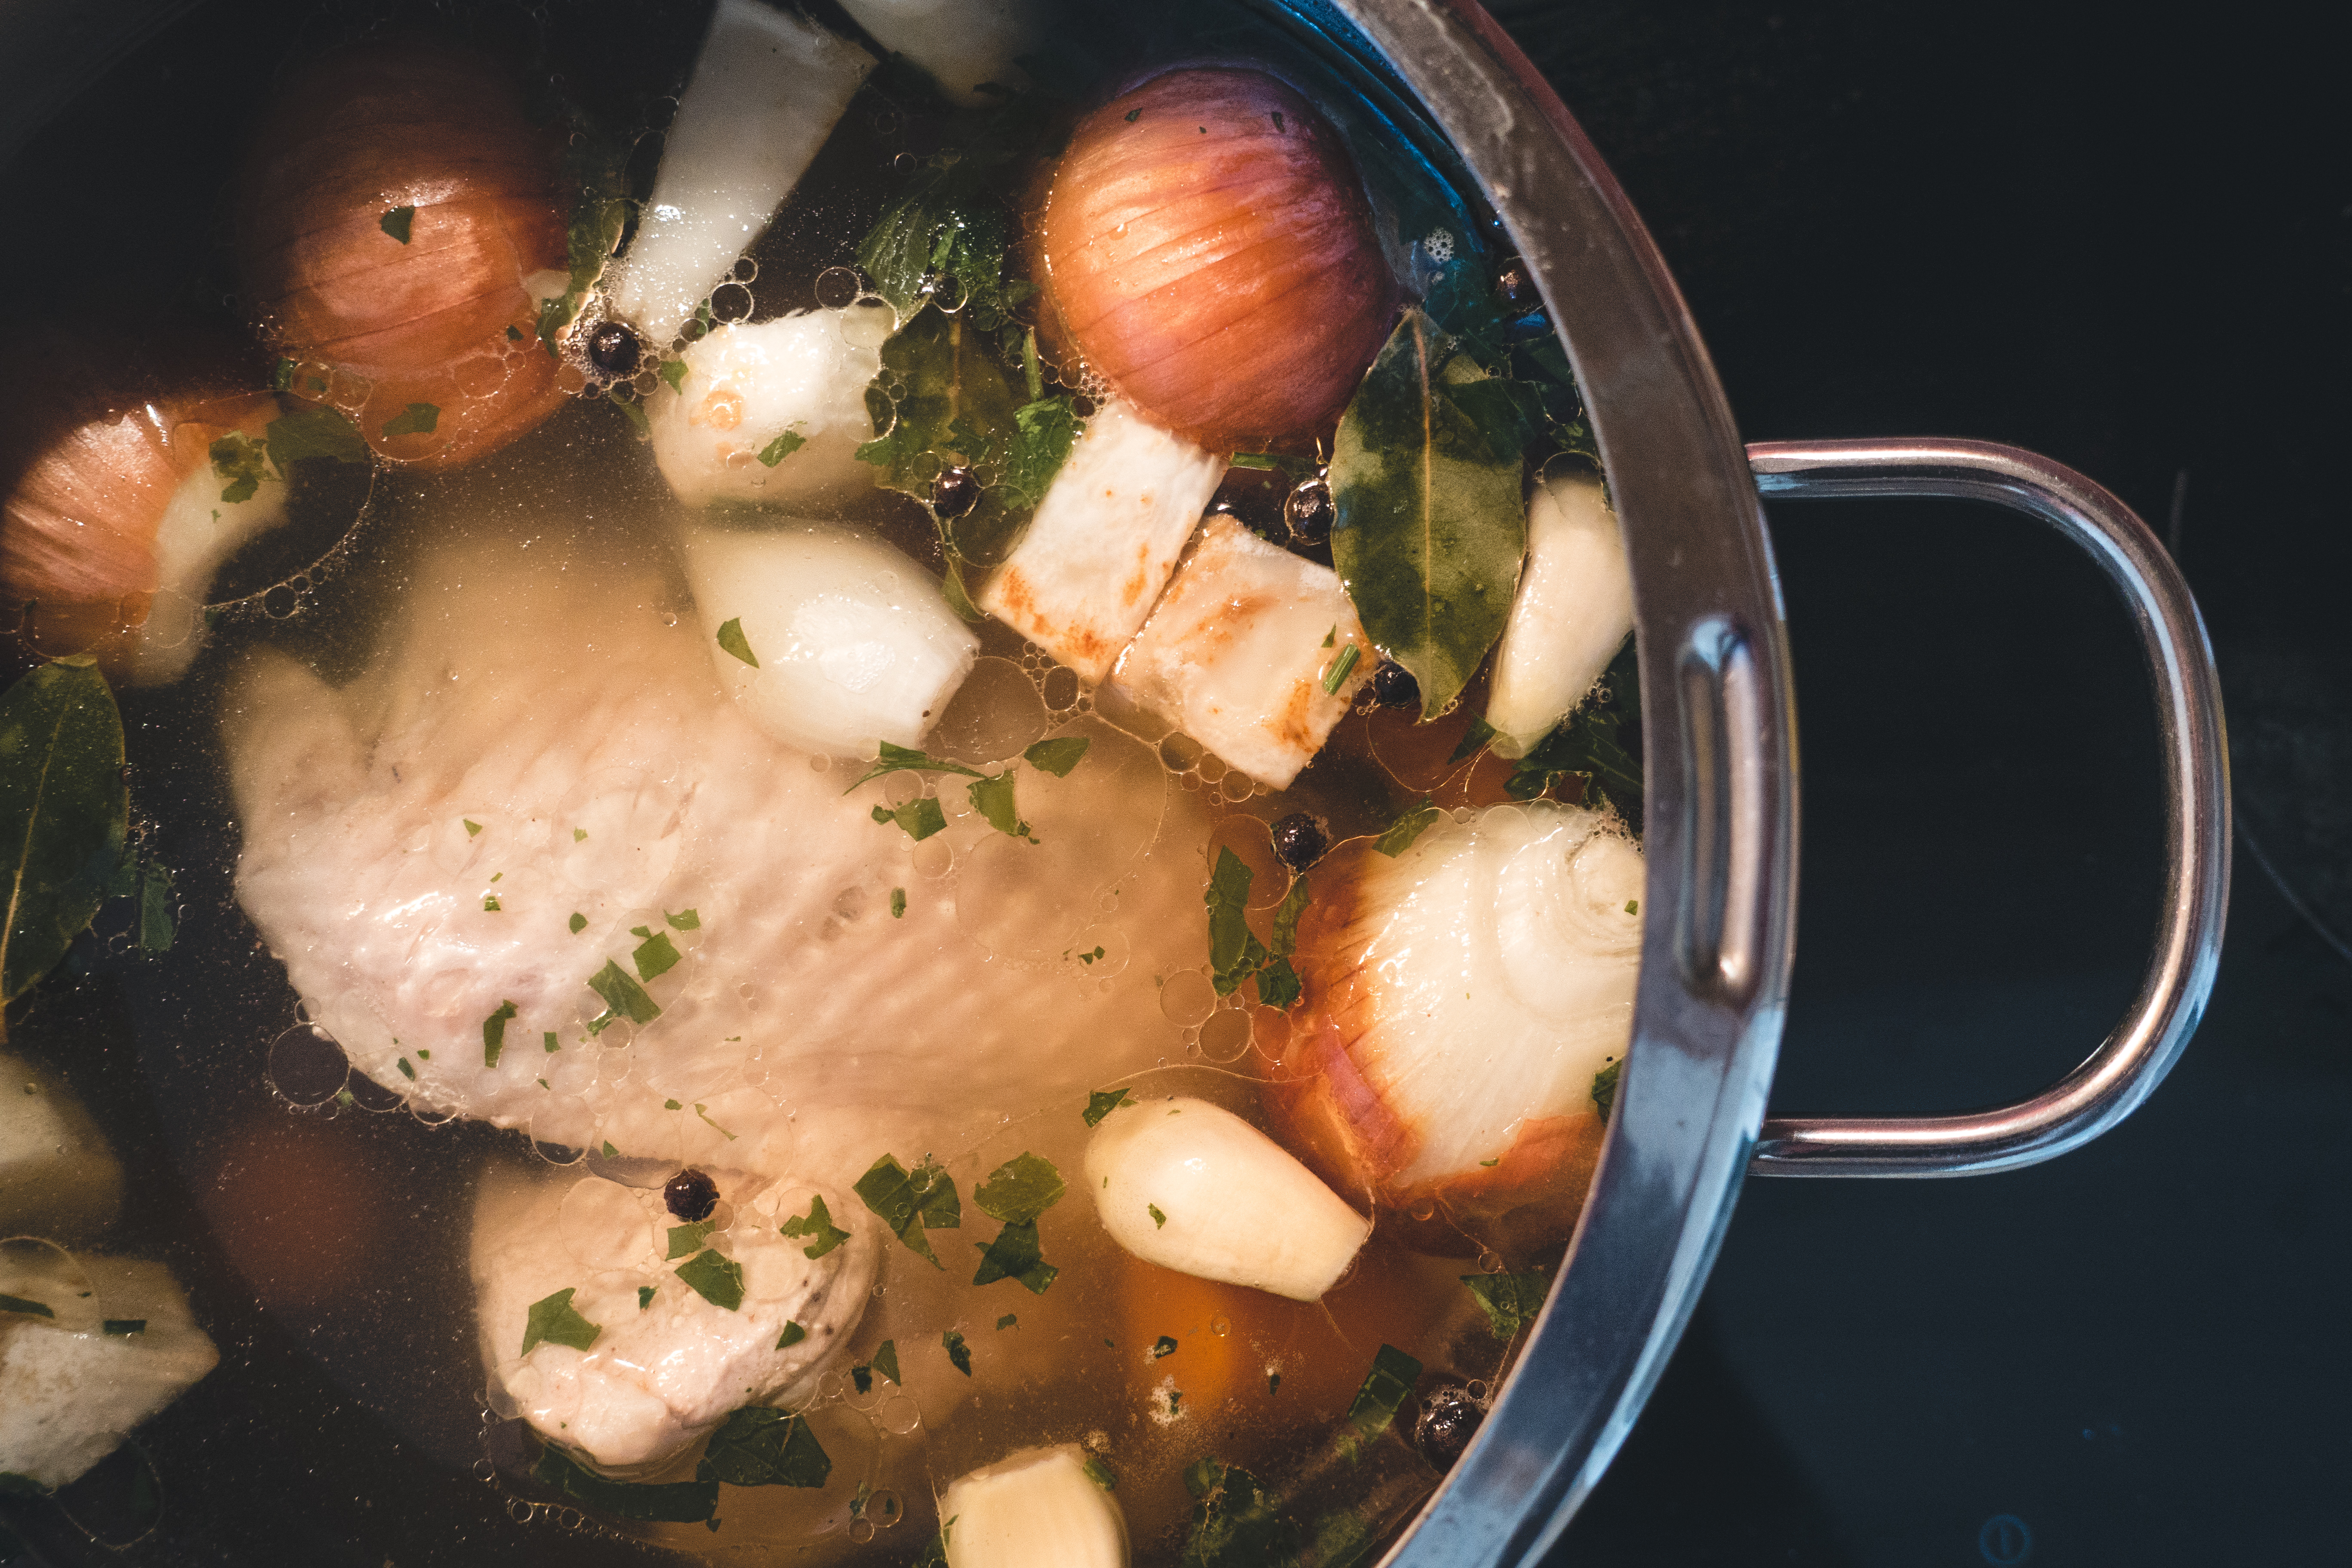 Cooking homemade chicken broth